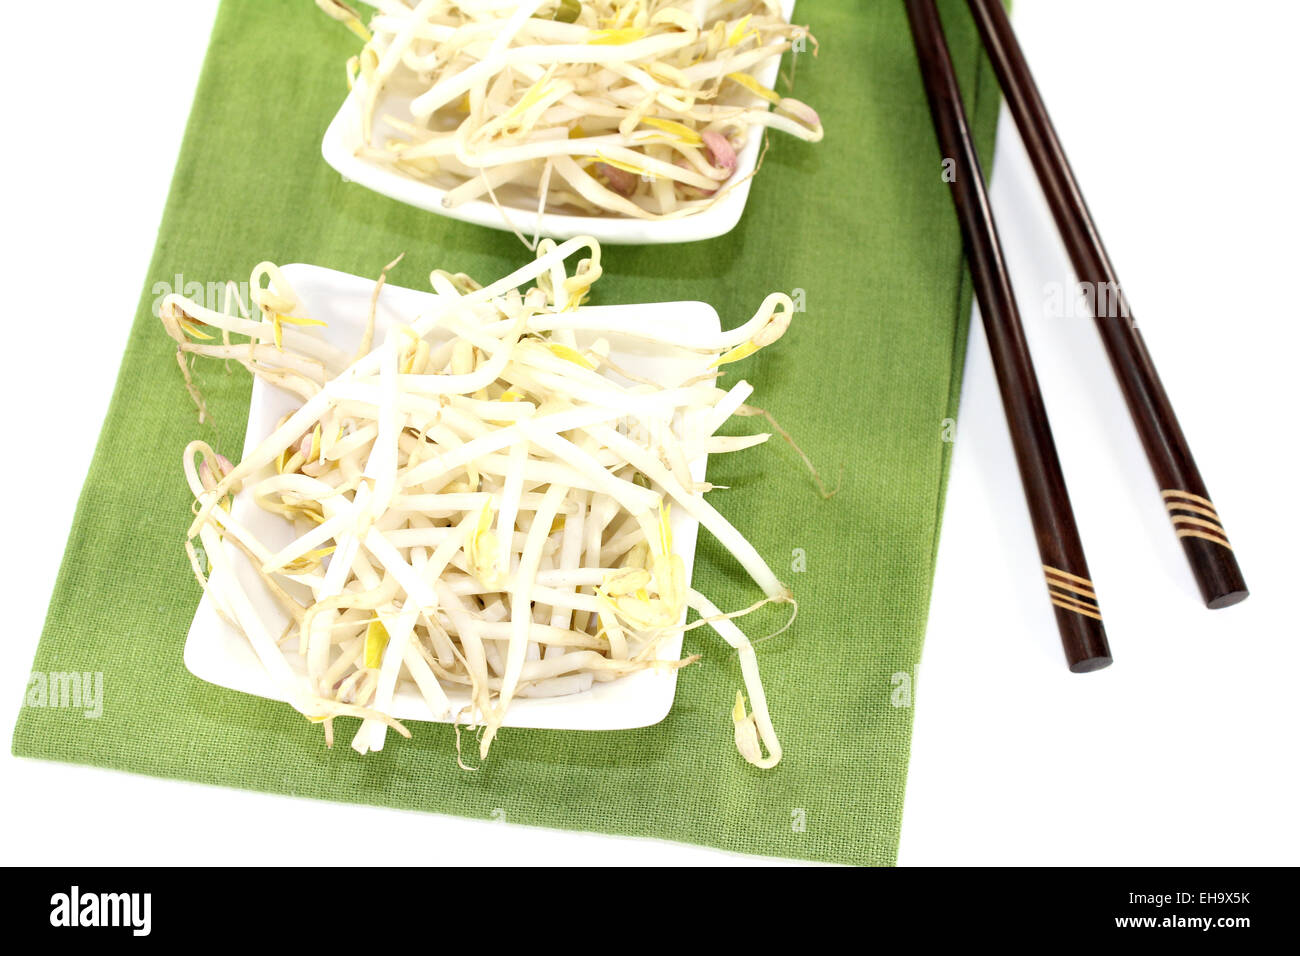 bright mung bean sprouts with chopsticks on a light background - Stock Image